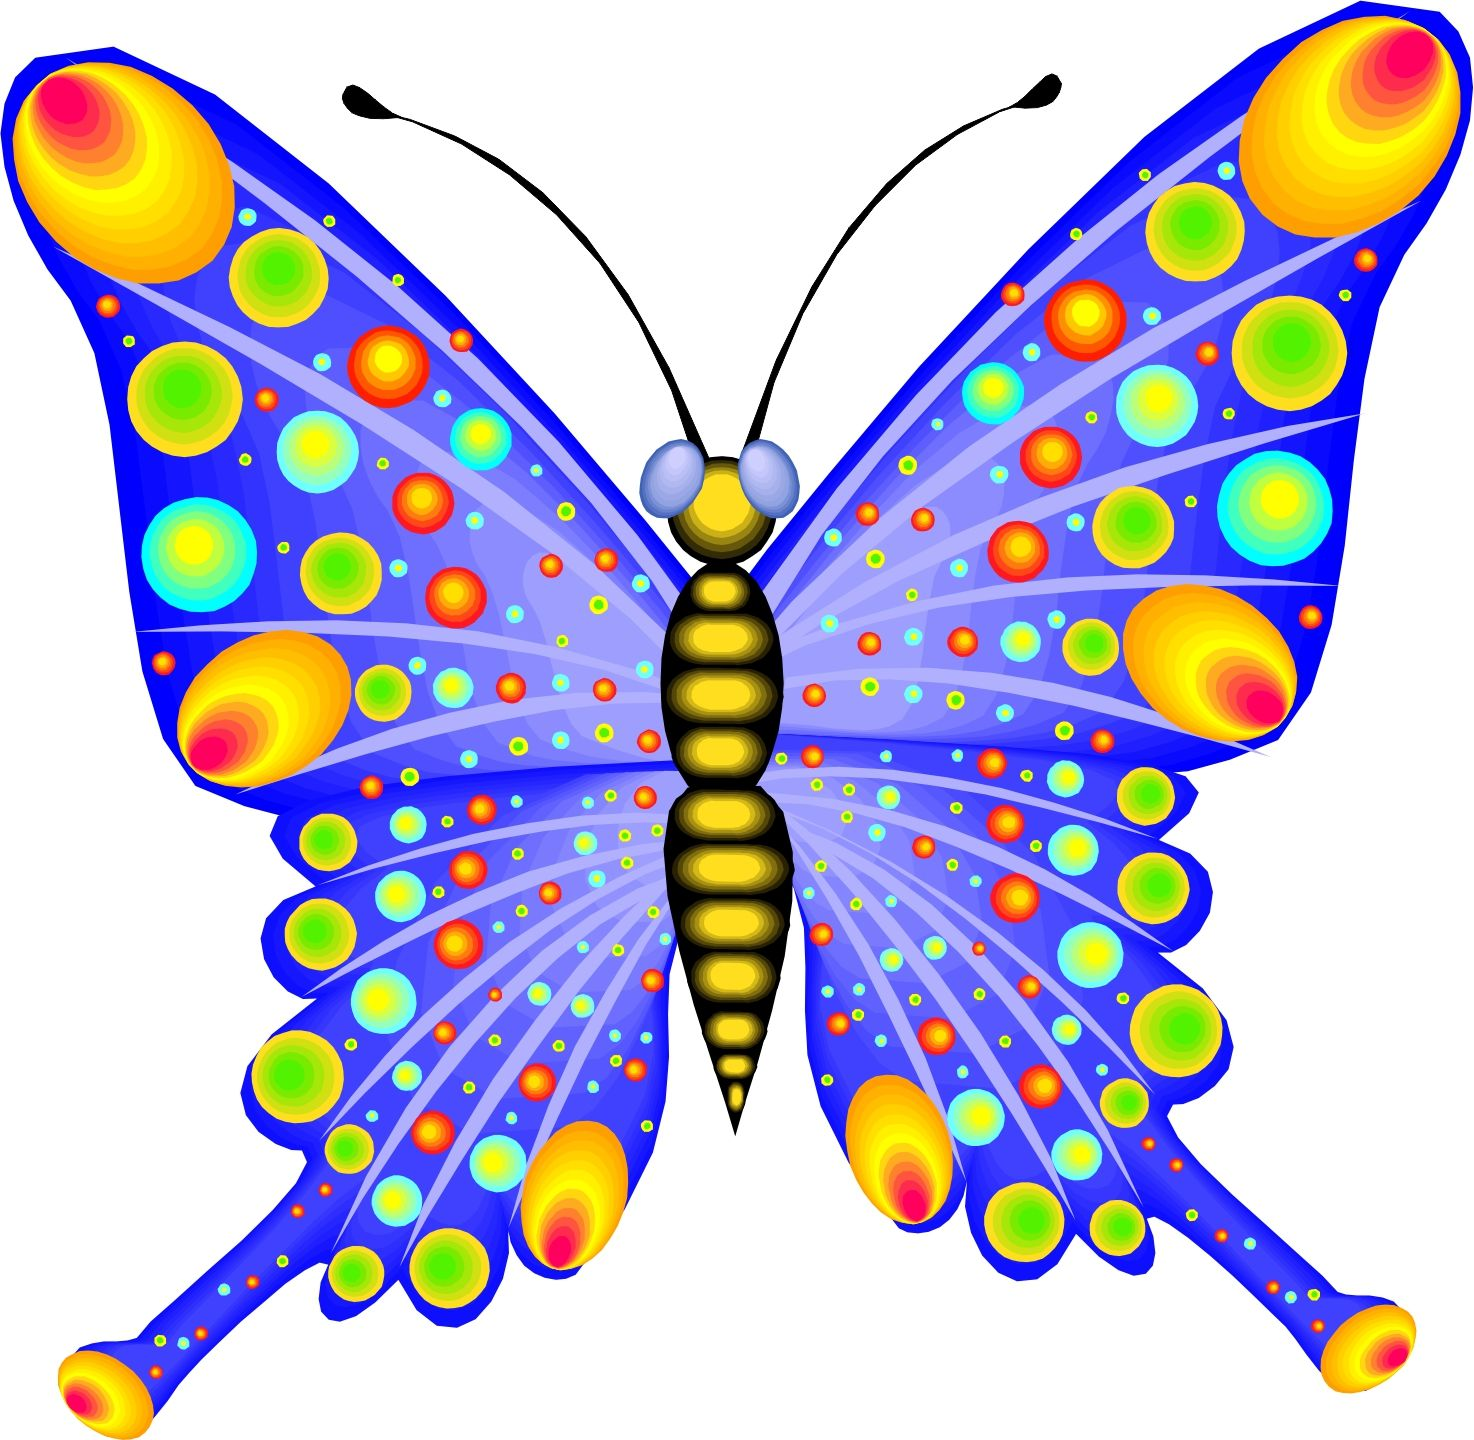 Cartoon pictures of butterflies. Butterfly clip art colourful picture download